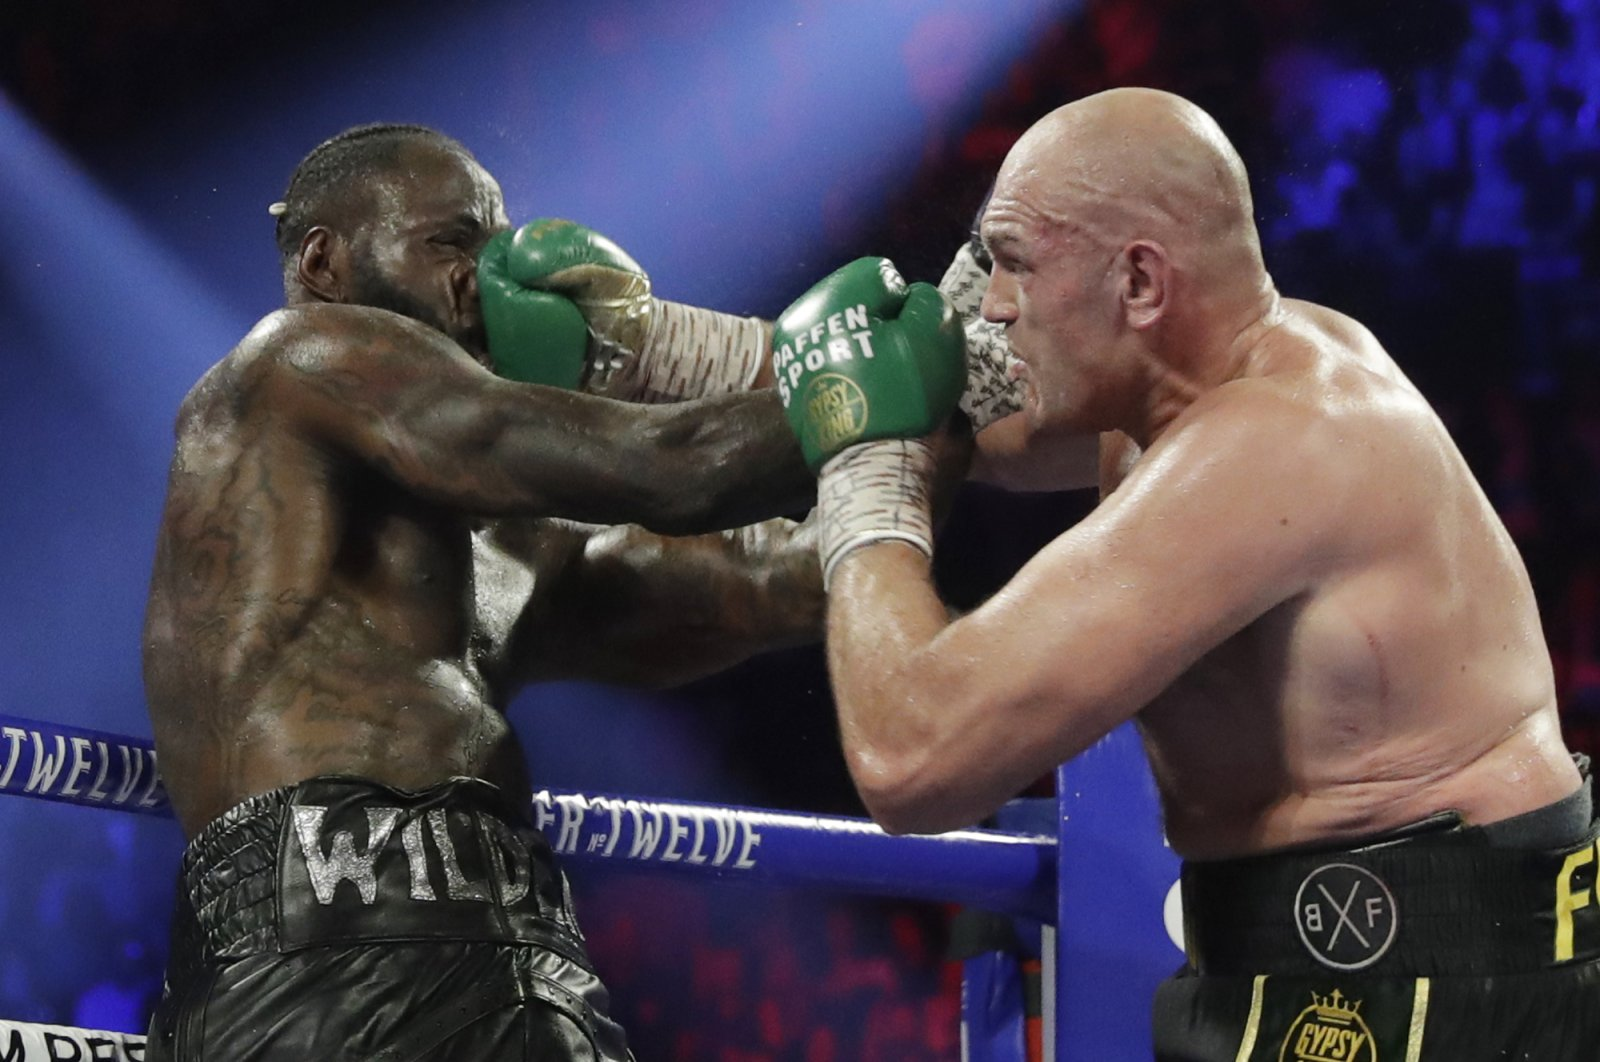 Tyson Fury lands a right to Deontay Wilder during a WBC heavyweight championship match in Las Vegas, Feb. 22, 2020. (AP Photo)